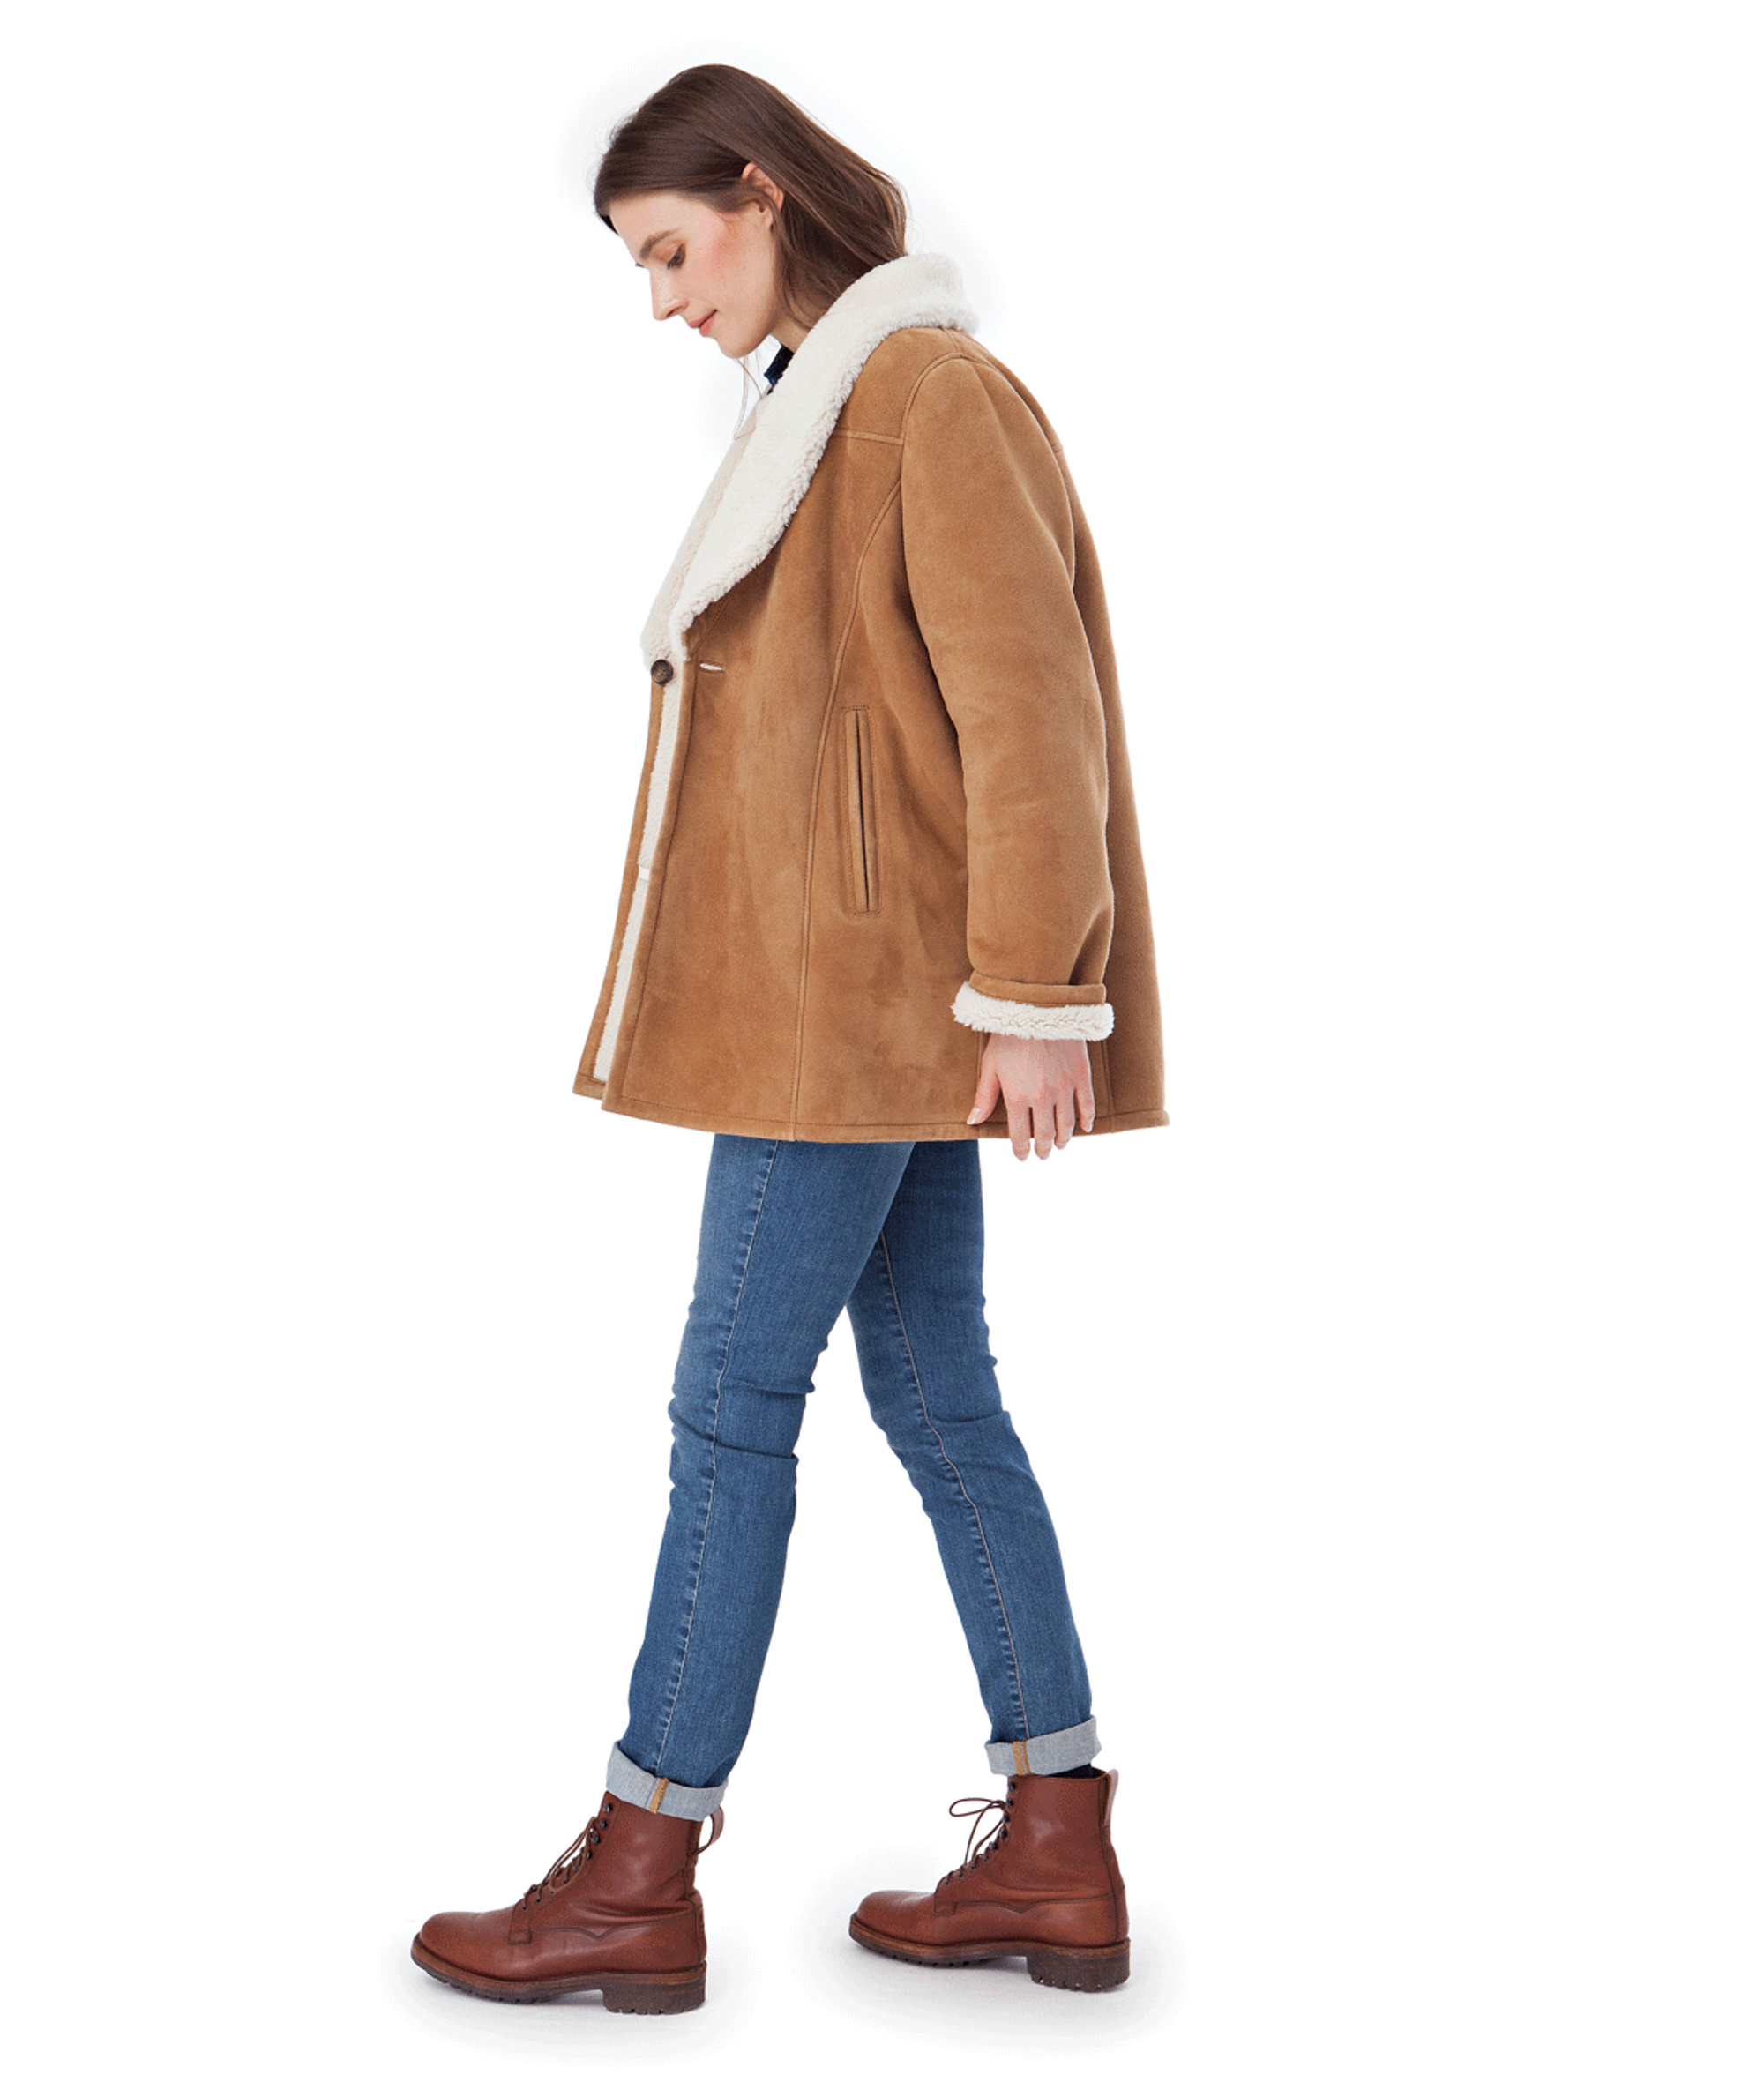 Shearling Jacket, Chipmunk Brown